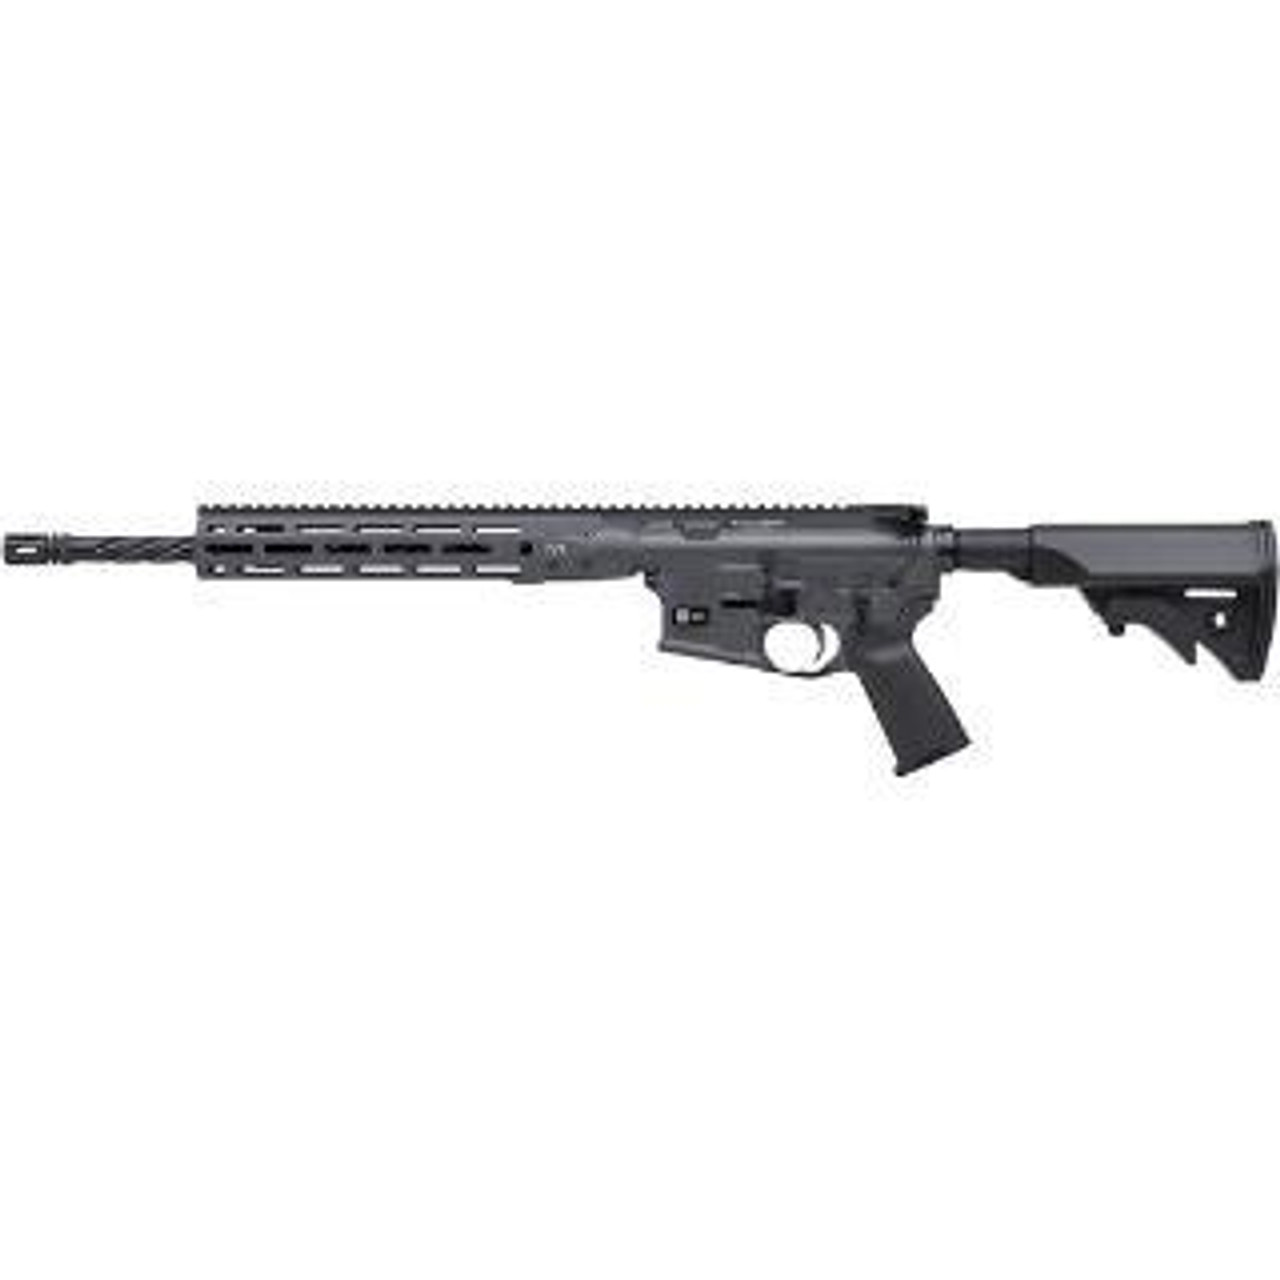 LWRC DI Rifle CALIFORNIA LEGAL-5.56- Sniper Grey